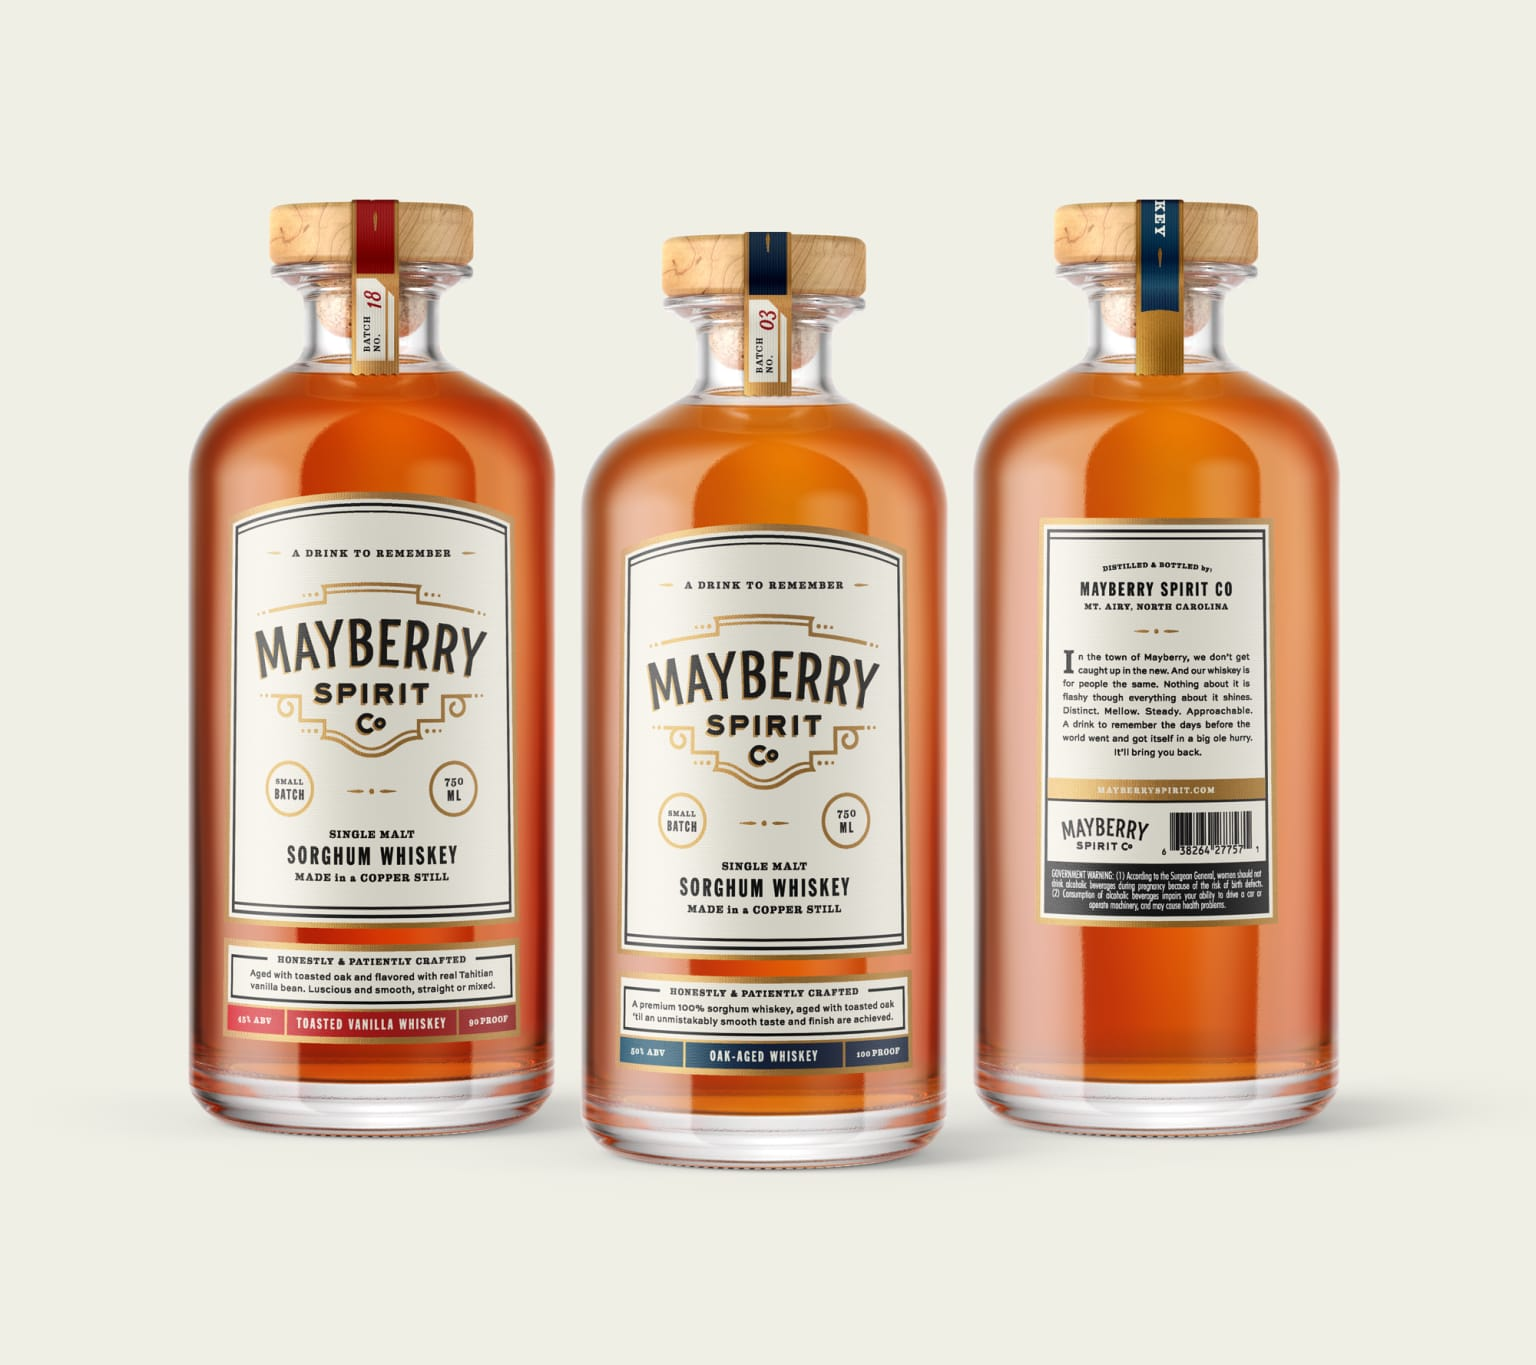 Mayberry Spirit Co. Brand Identity and Packaging